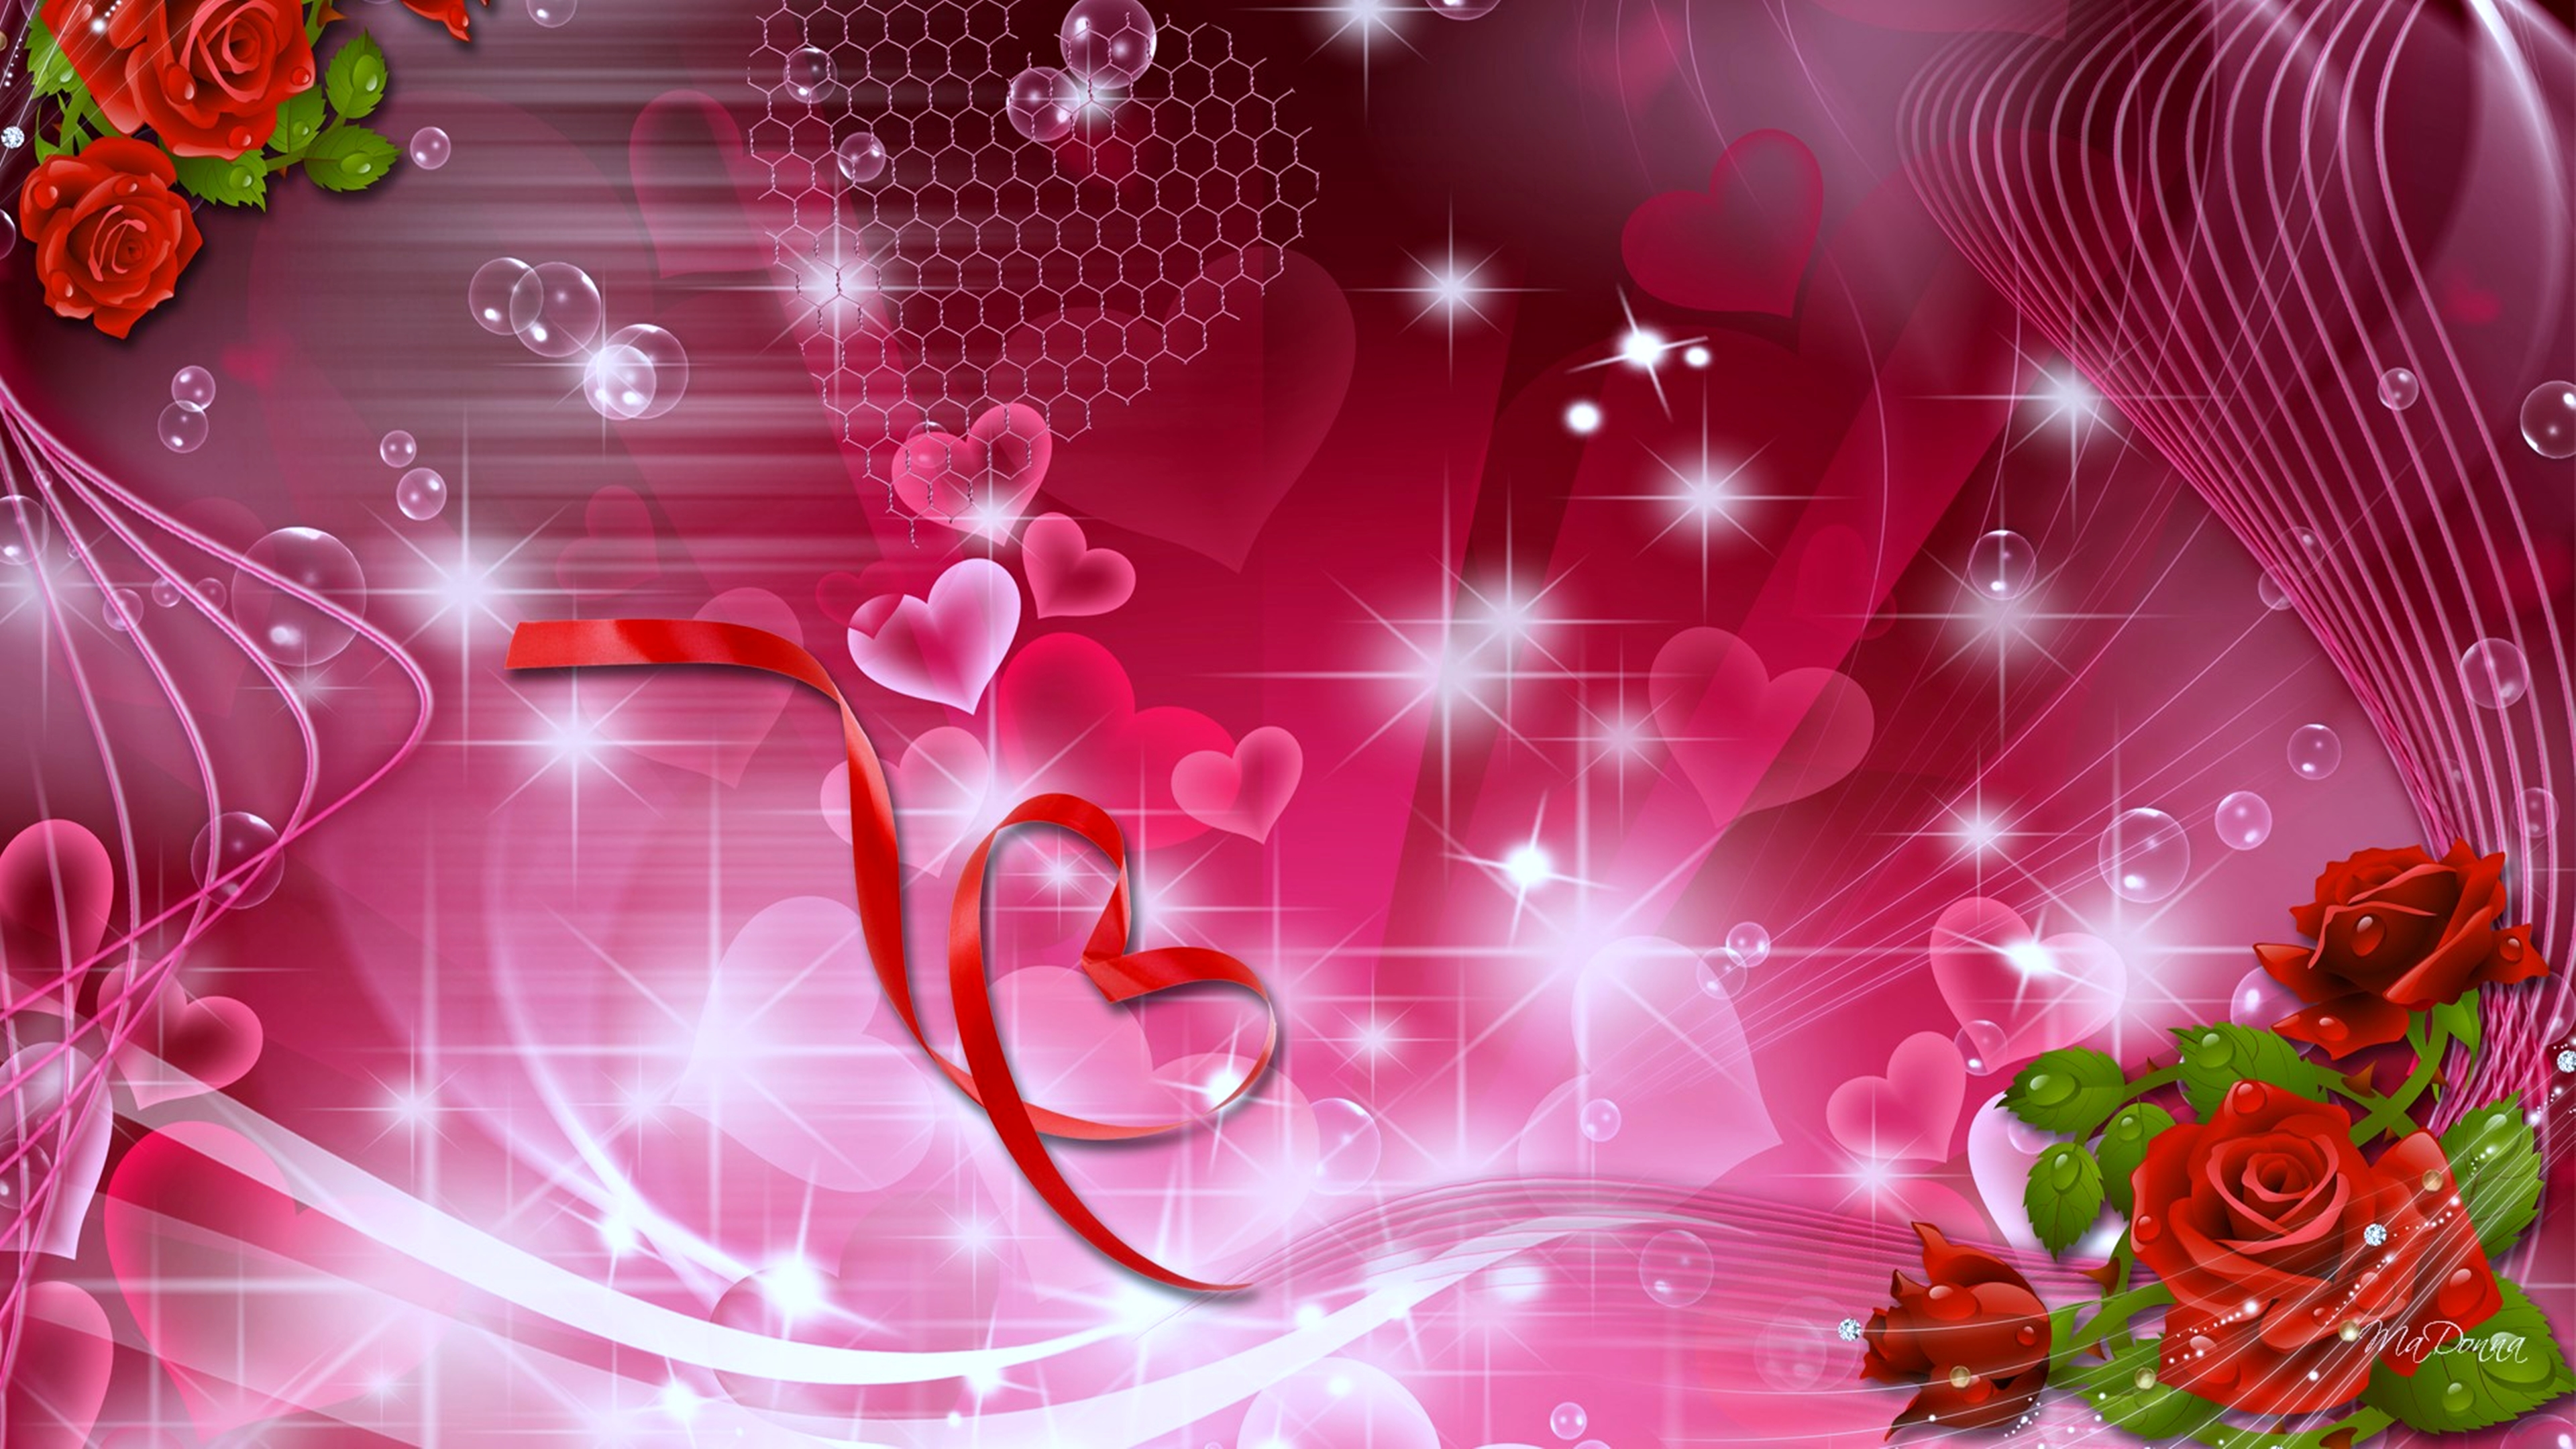 red and black love wallpapers - photo #42